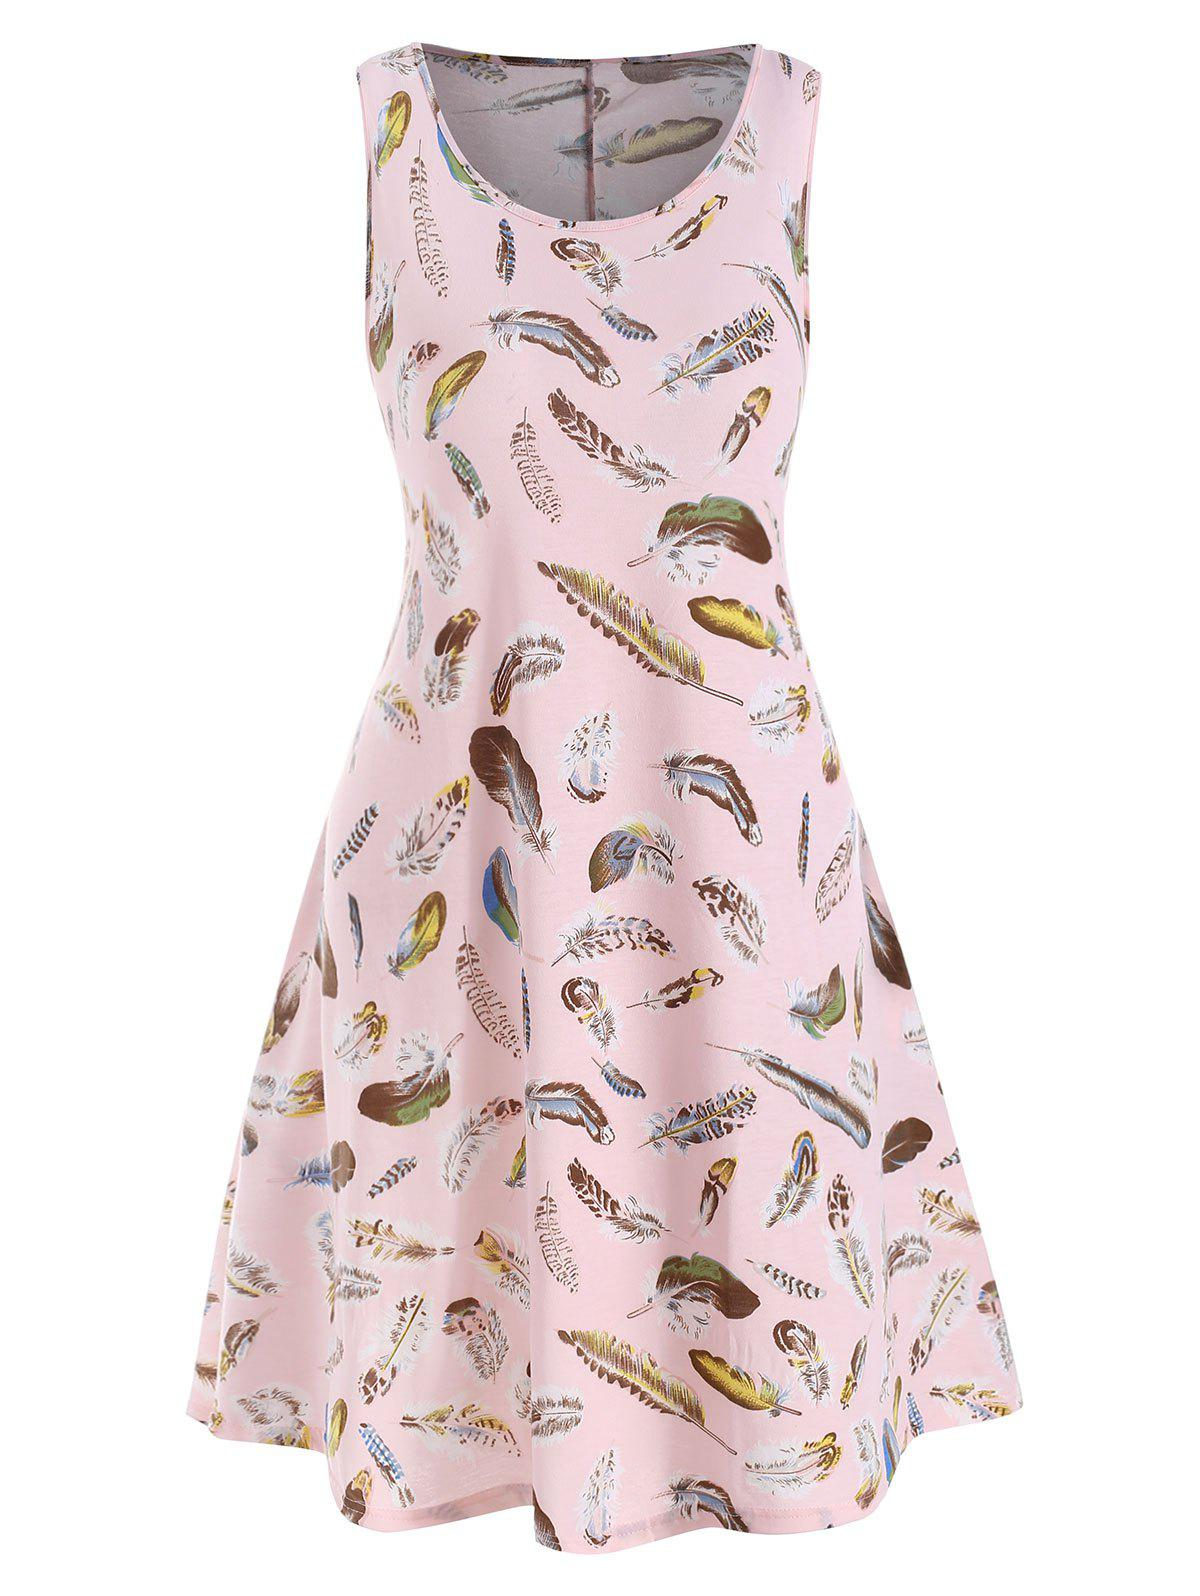 Feather Print Seam Pockets Sleeveless Plus Size Dress - PINK L